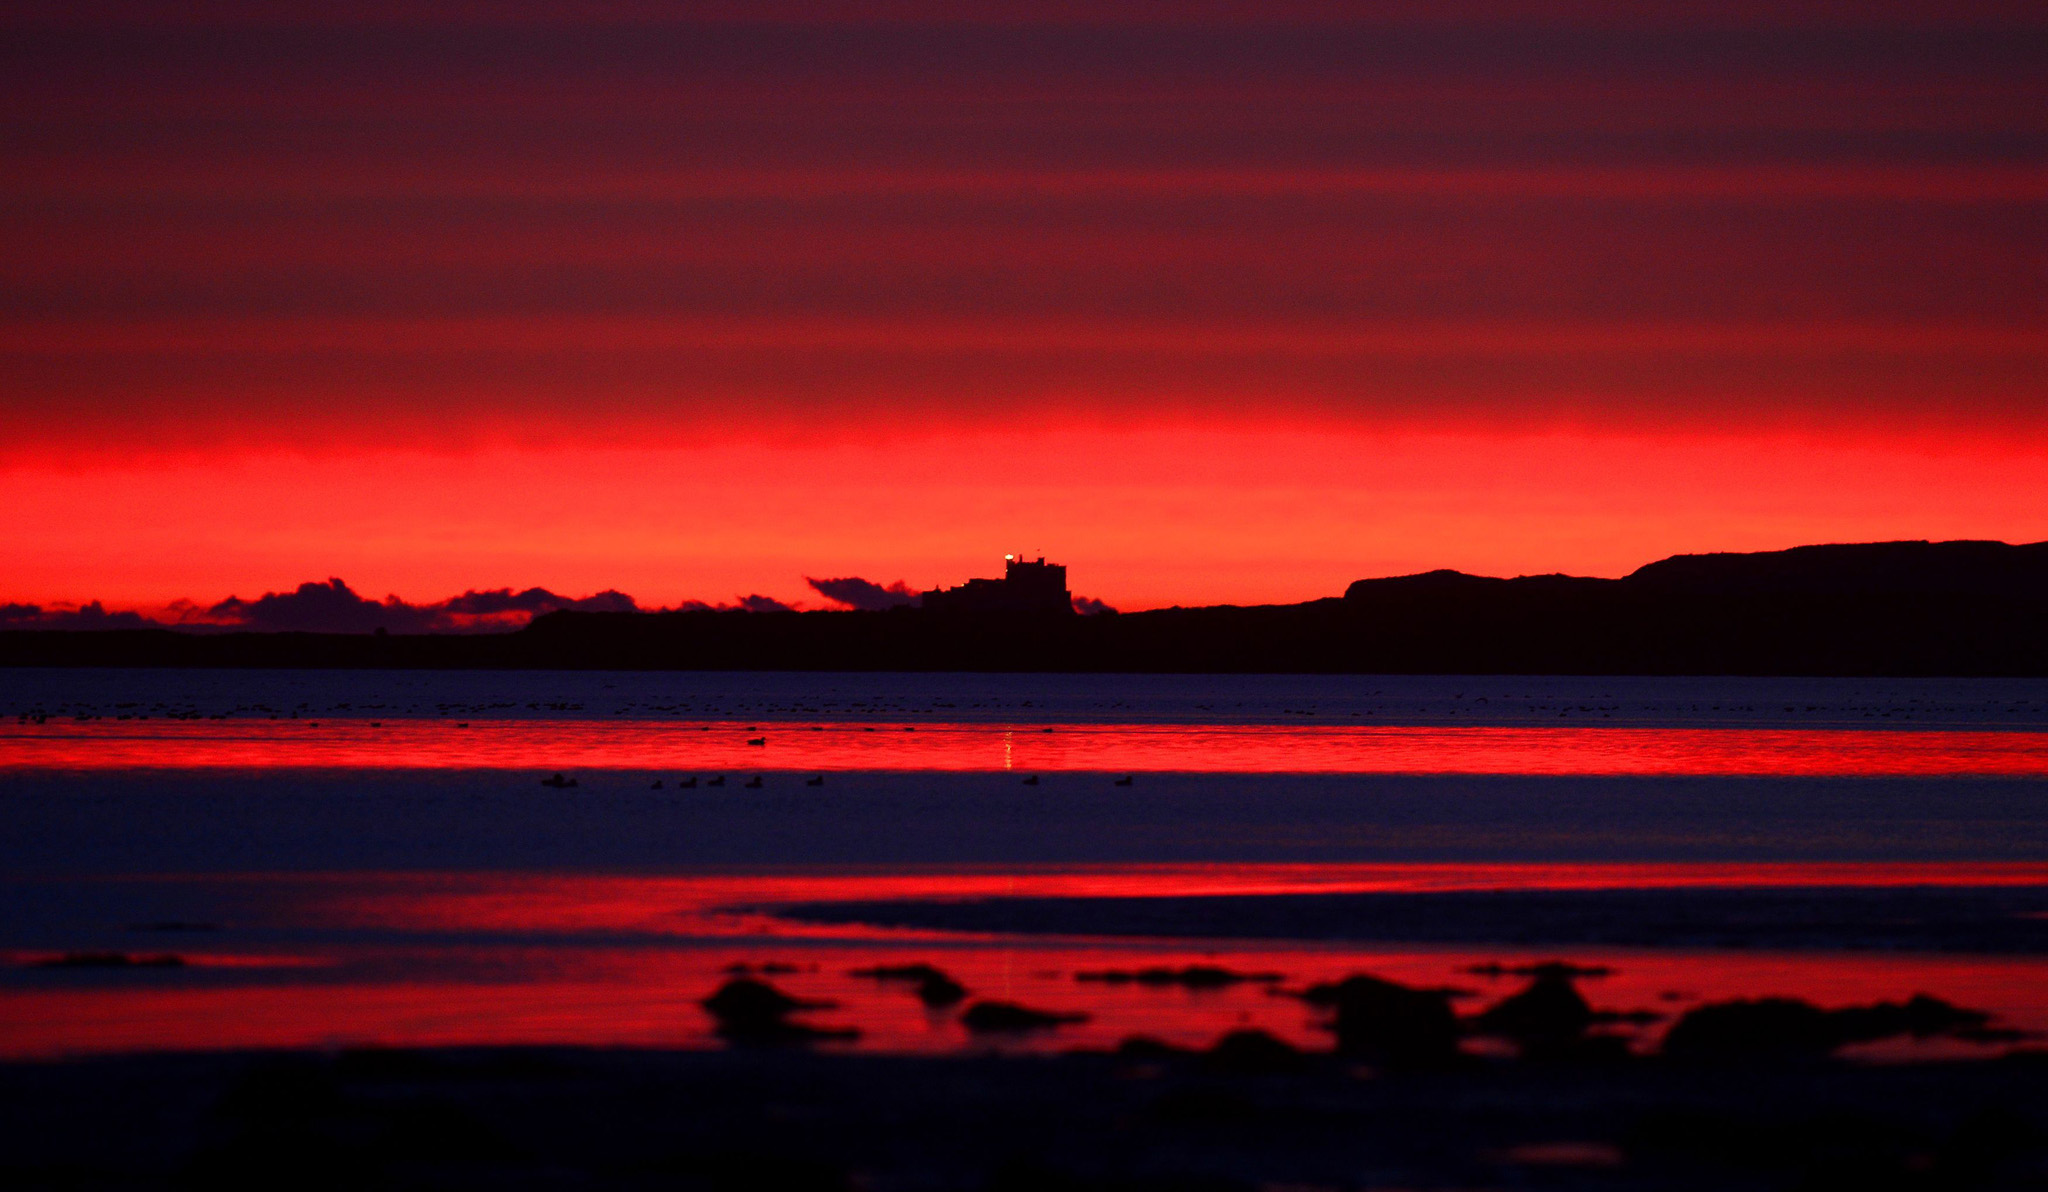 Autumn weather Nov 26th...A glowing sunrise this morning over Bamburgh Castle in Northumberland. PRESS ASSOCIATION Photo. Picture date: Tuesday November 26, 2013.